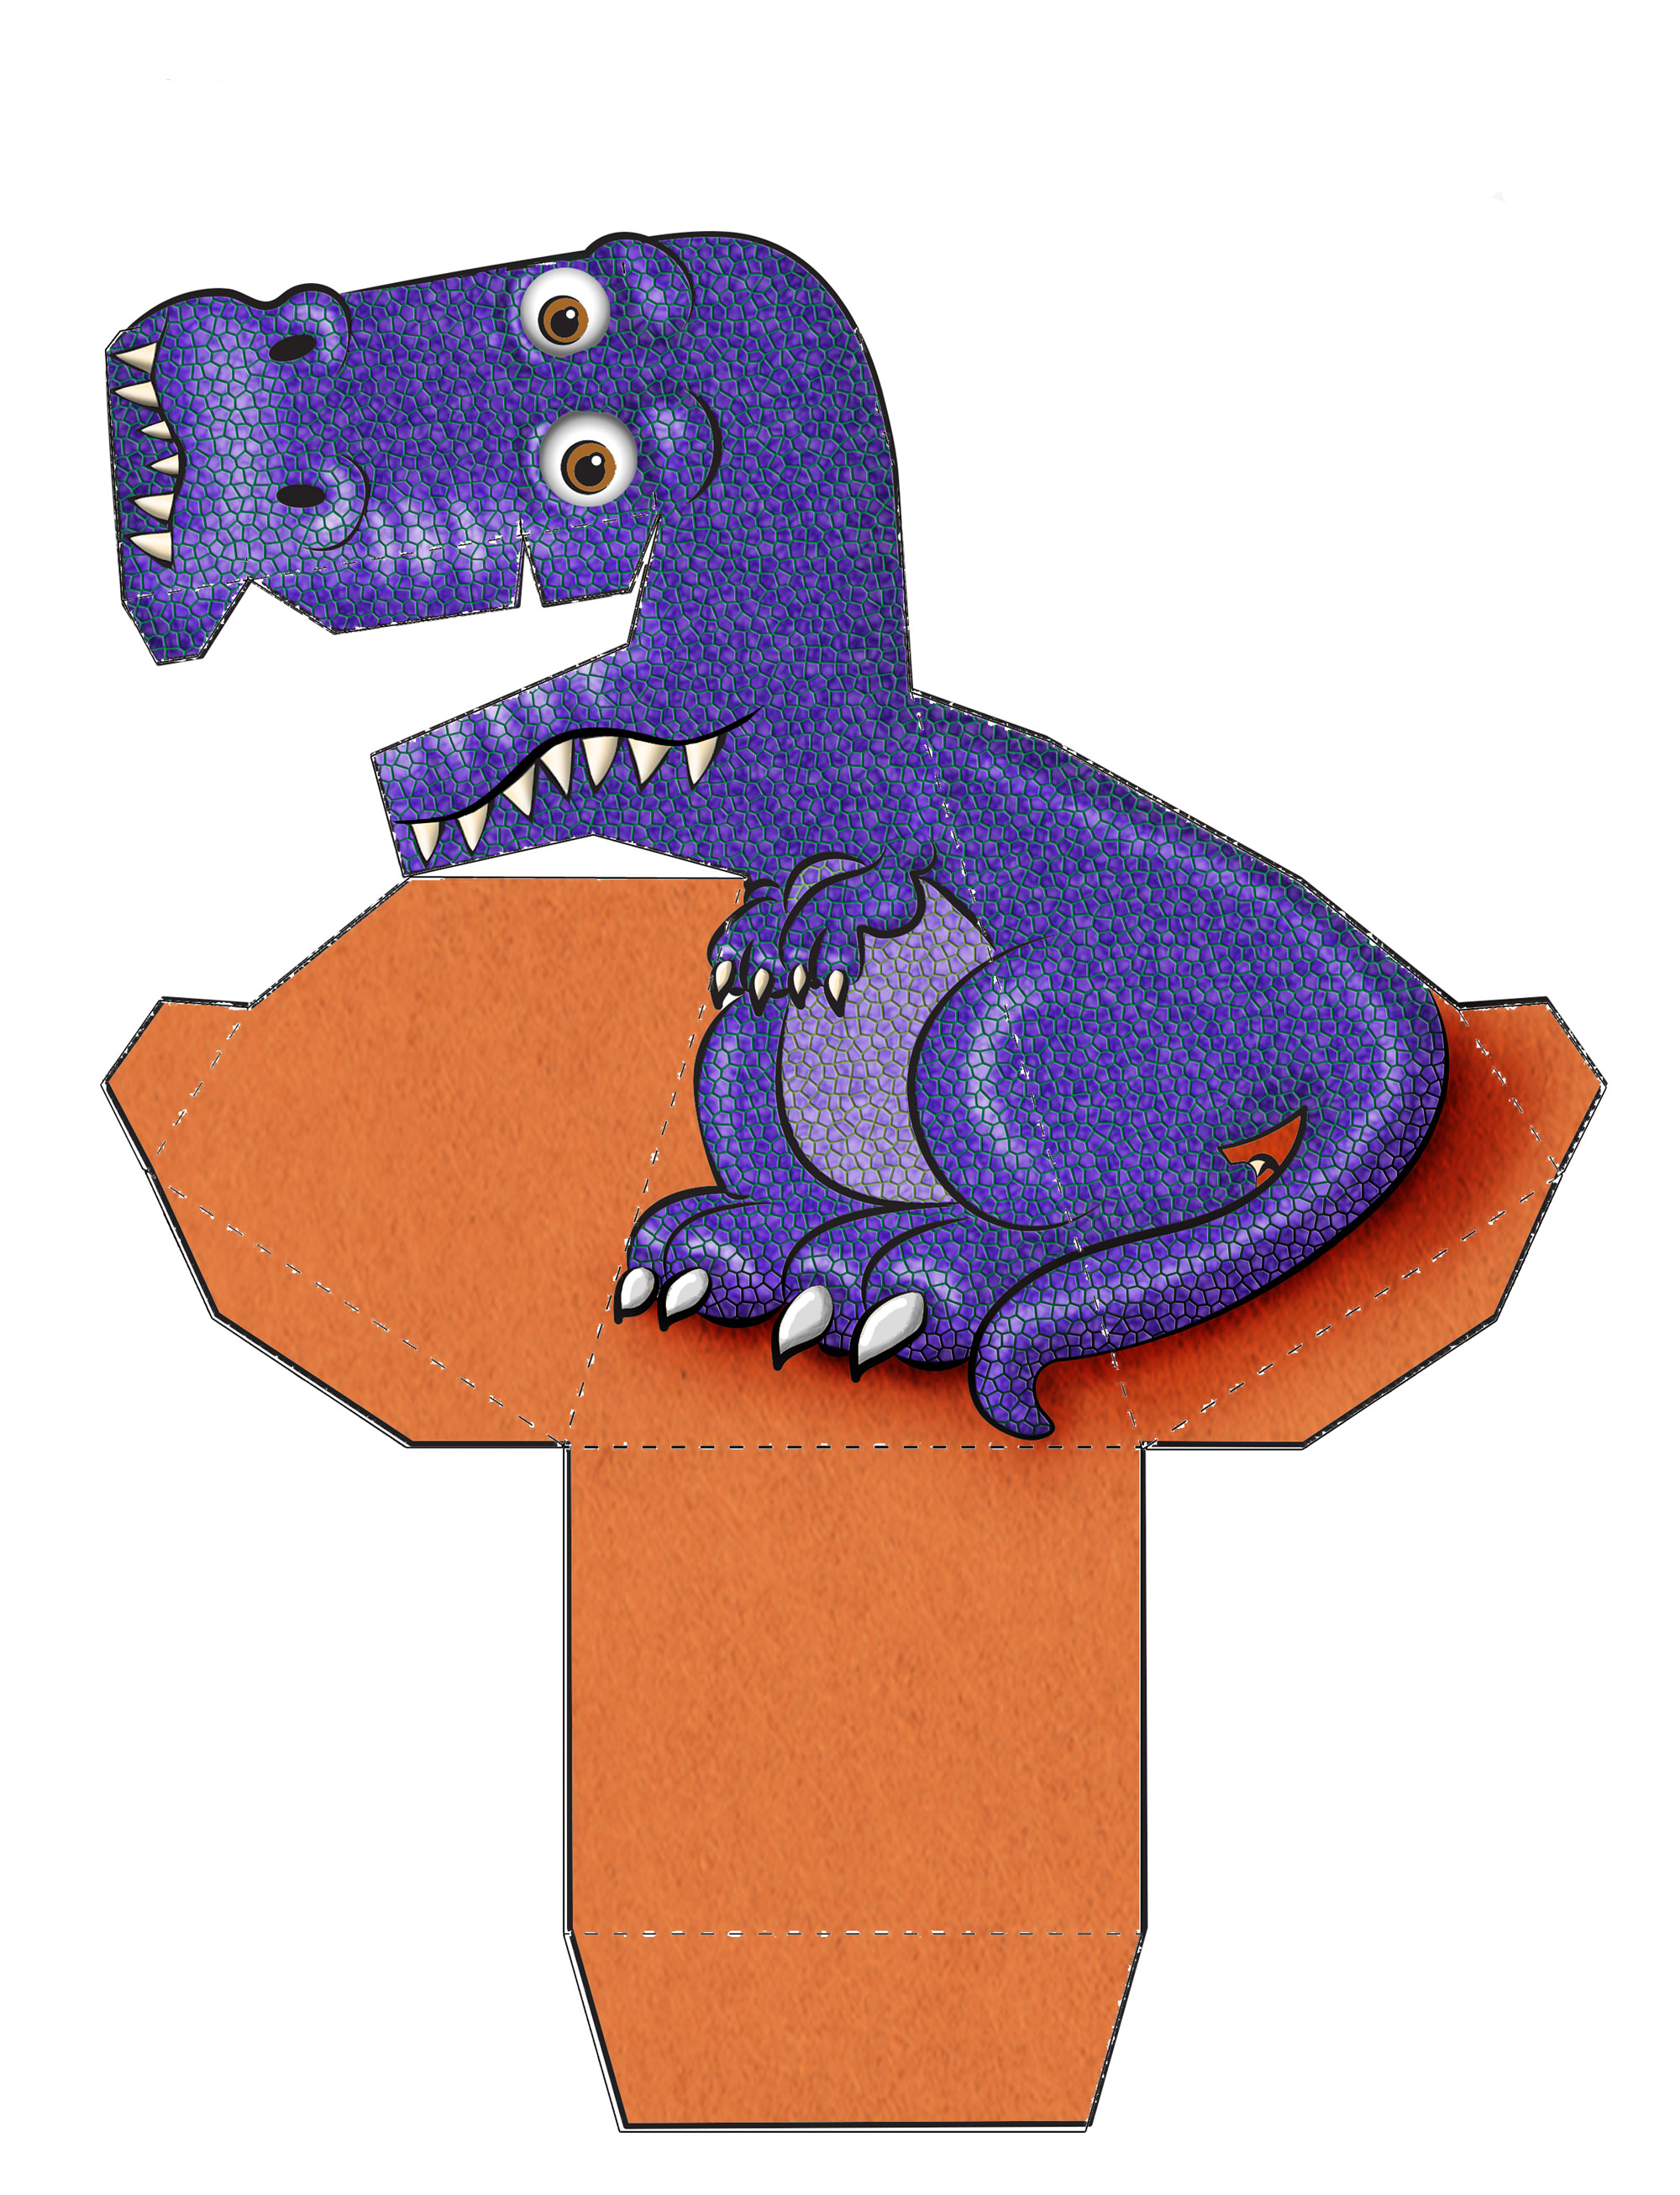 Print your own amazing t rex illusion inkntoneruk news for Animated optical illusions template